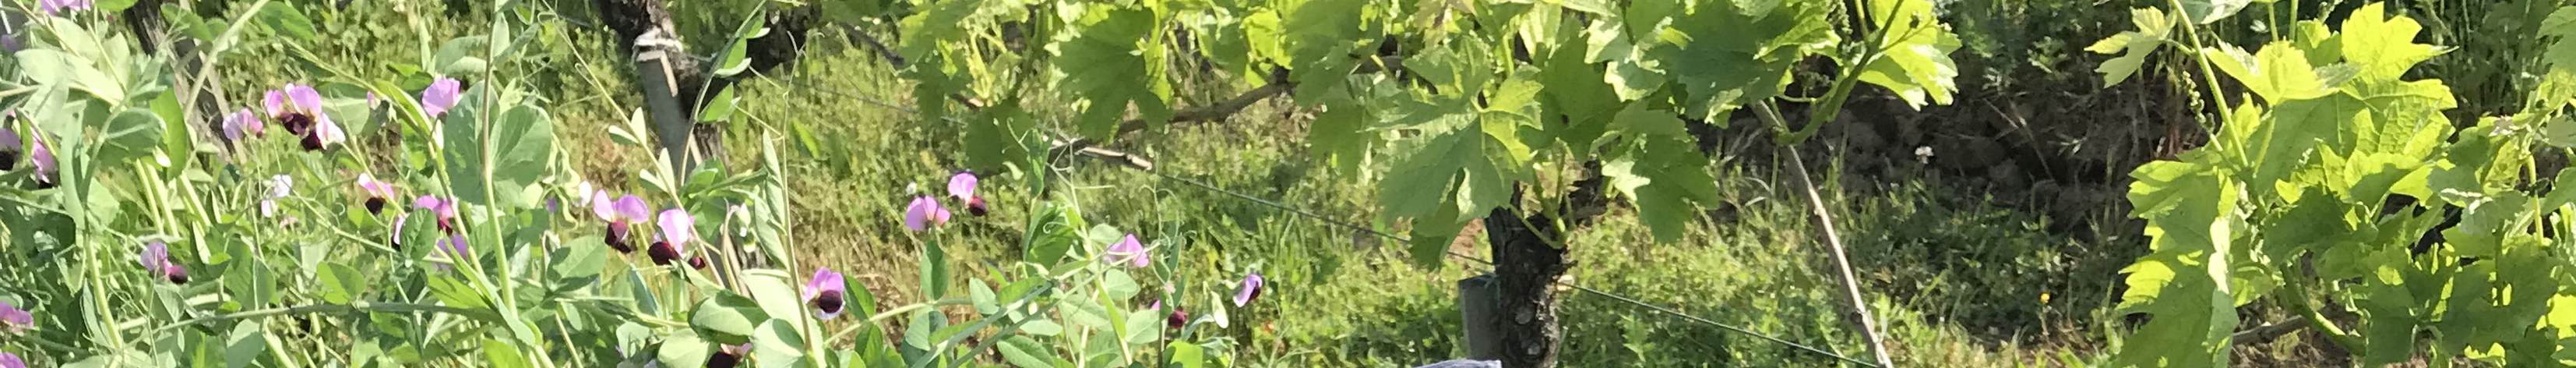 Vines - May 2018